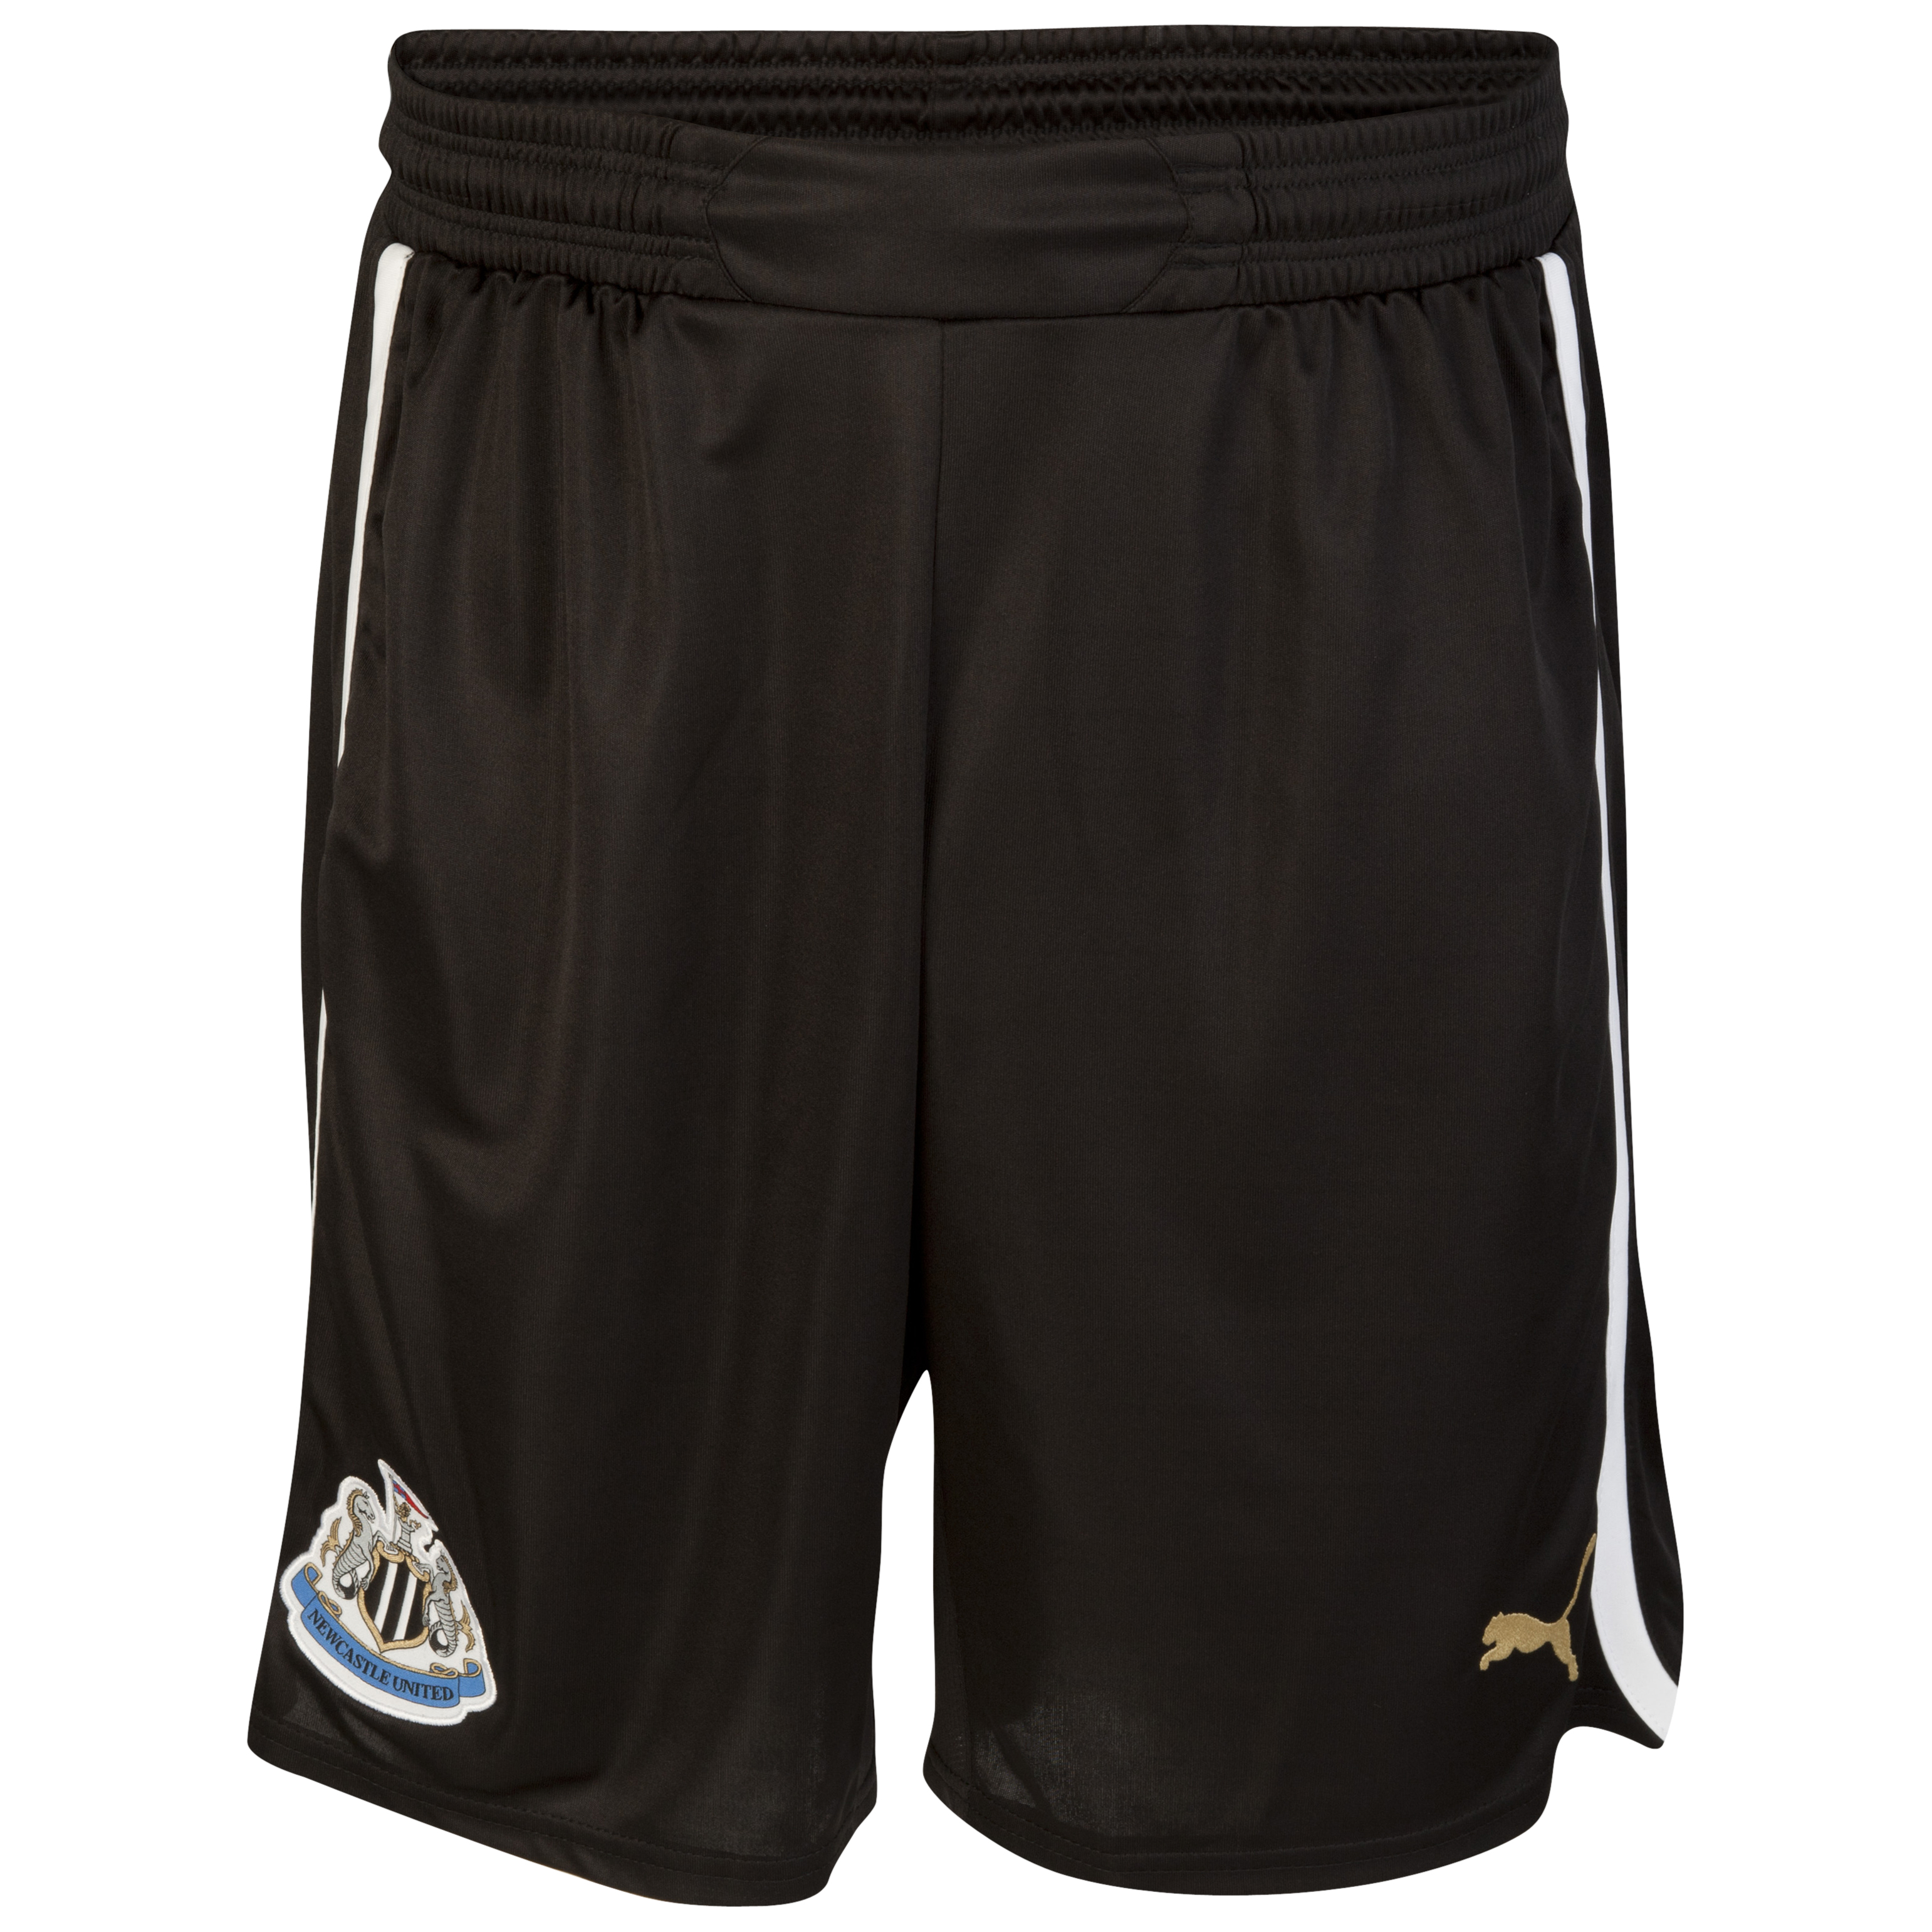 Newcastle United Home Short 2012/13